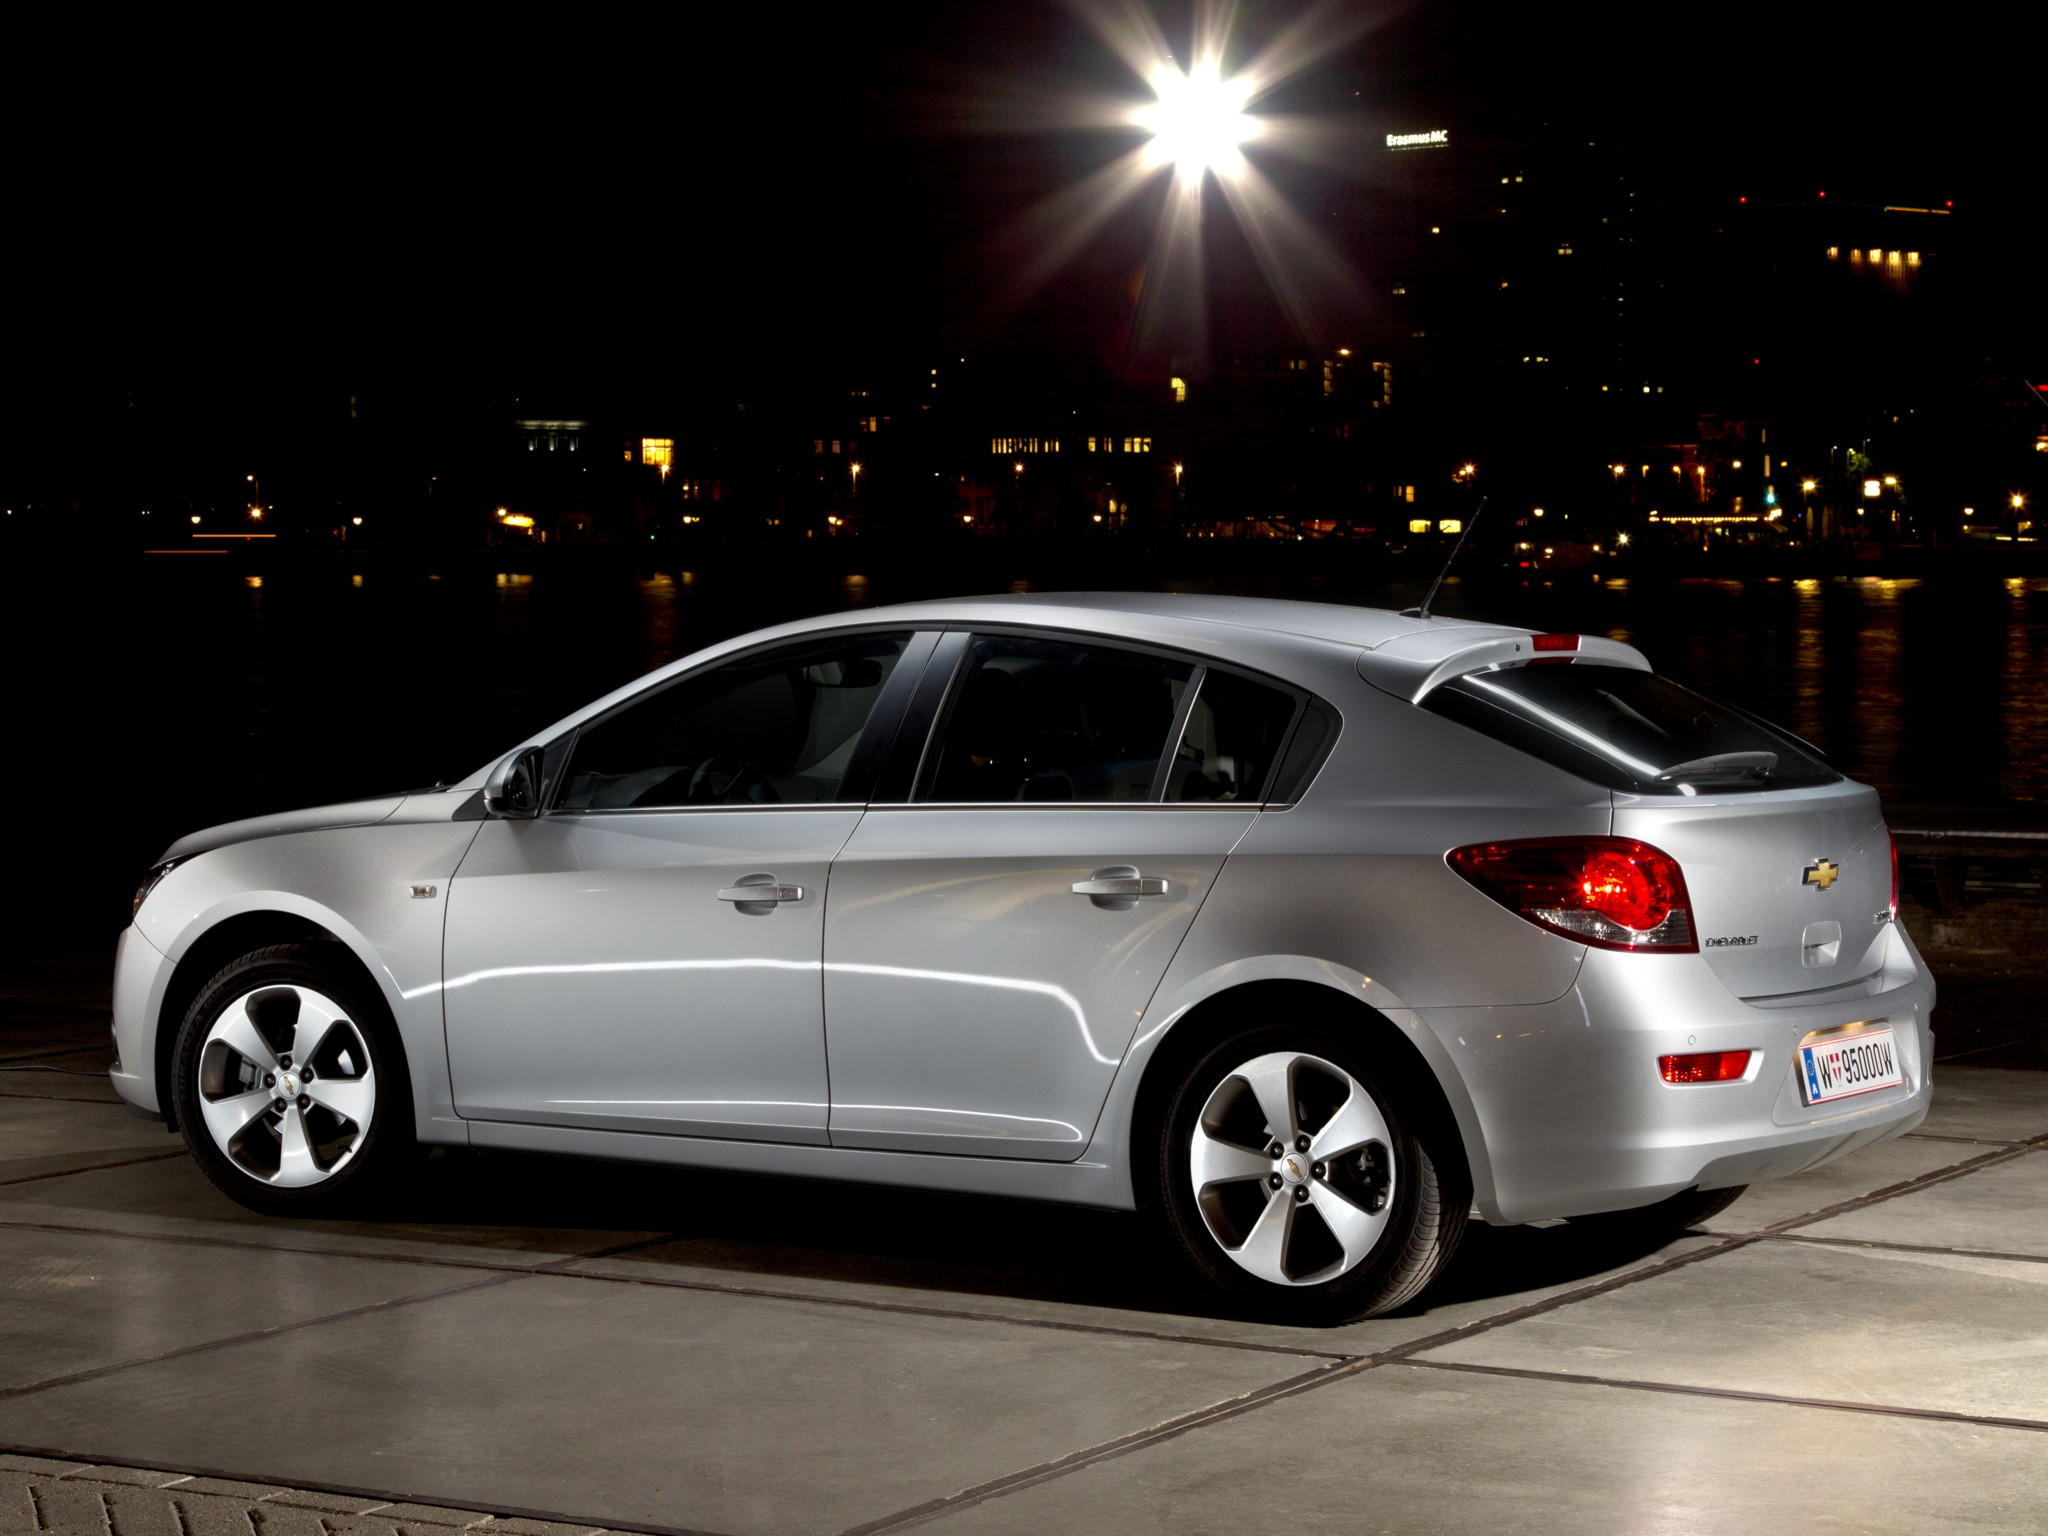 hatchback chevy cruze coming soon